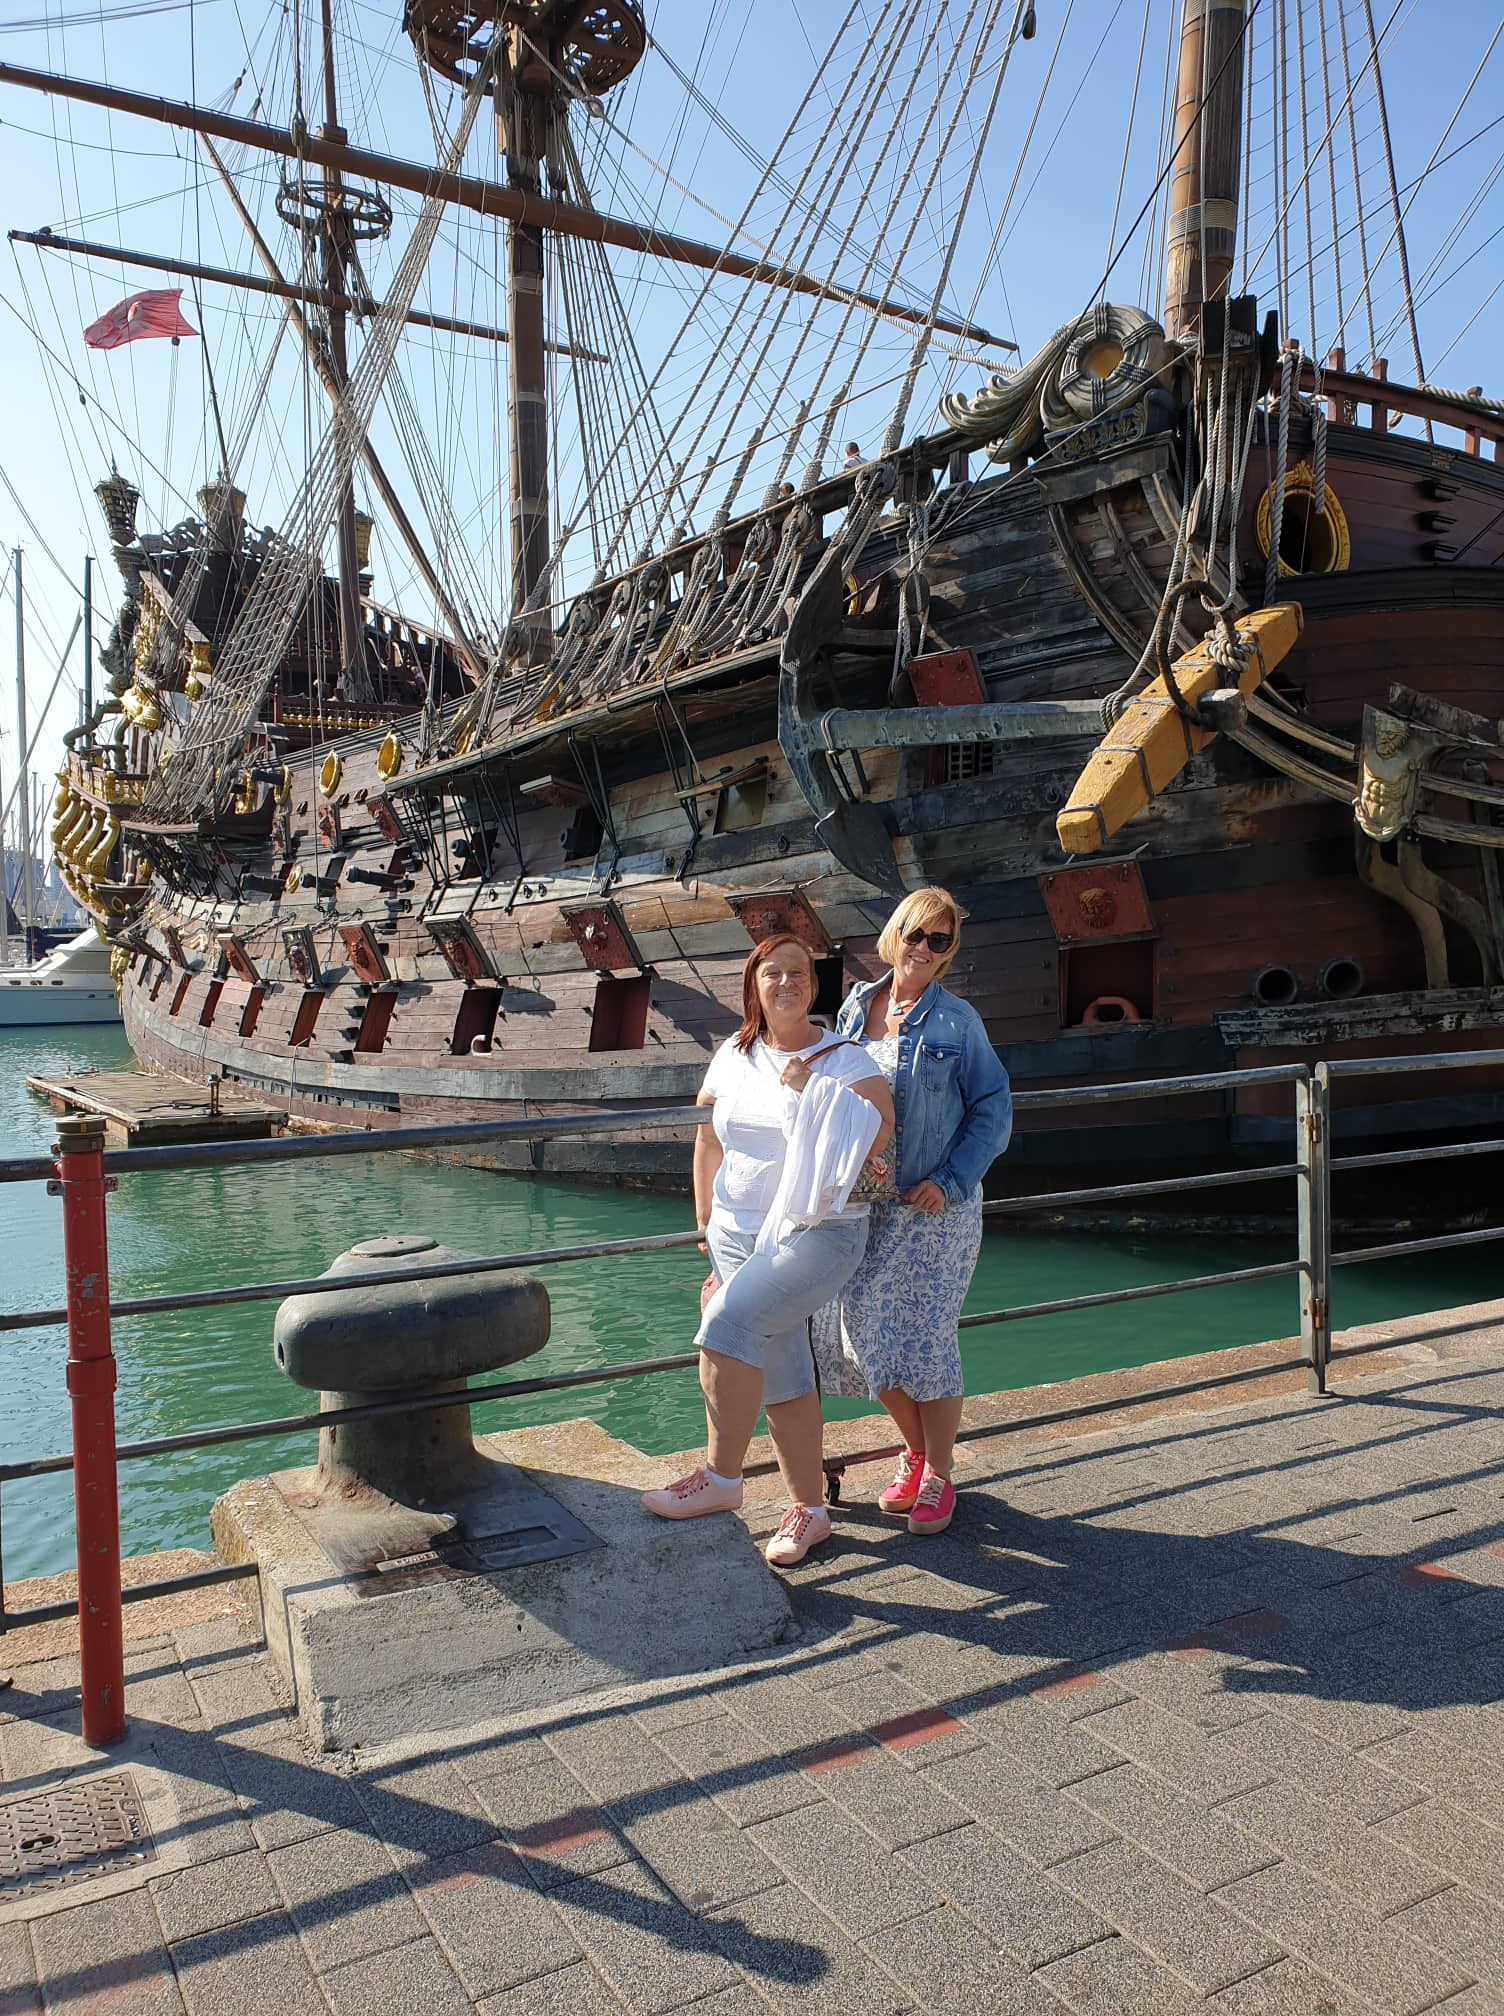 Cruise Genoa Pirate ship